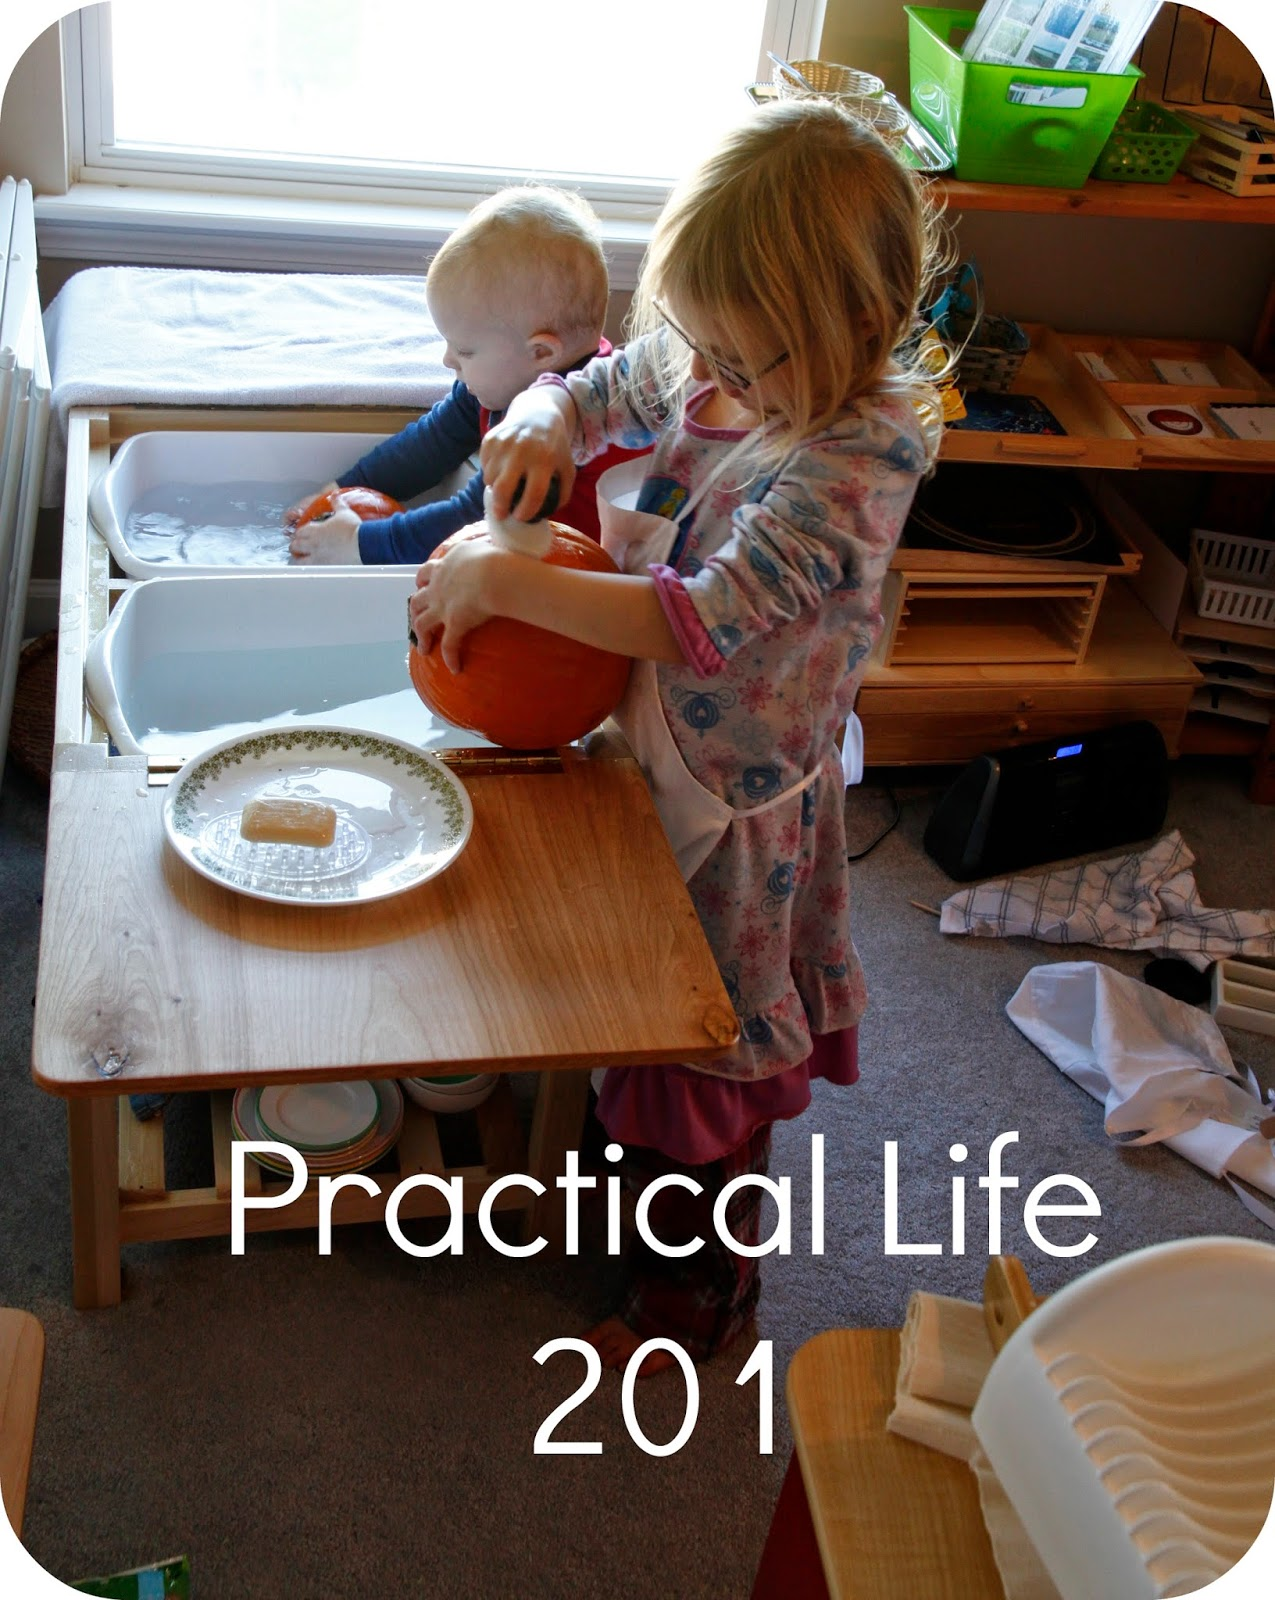 Practical Life 201